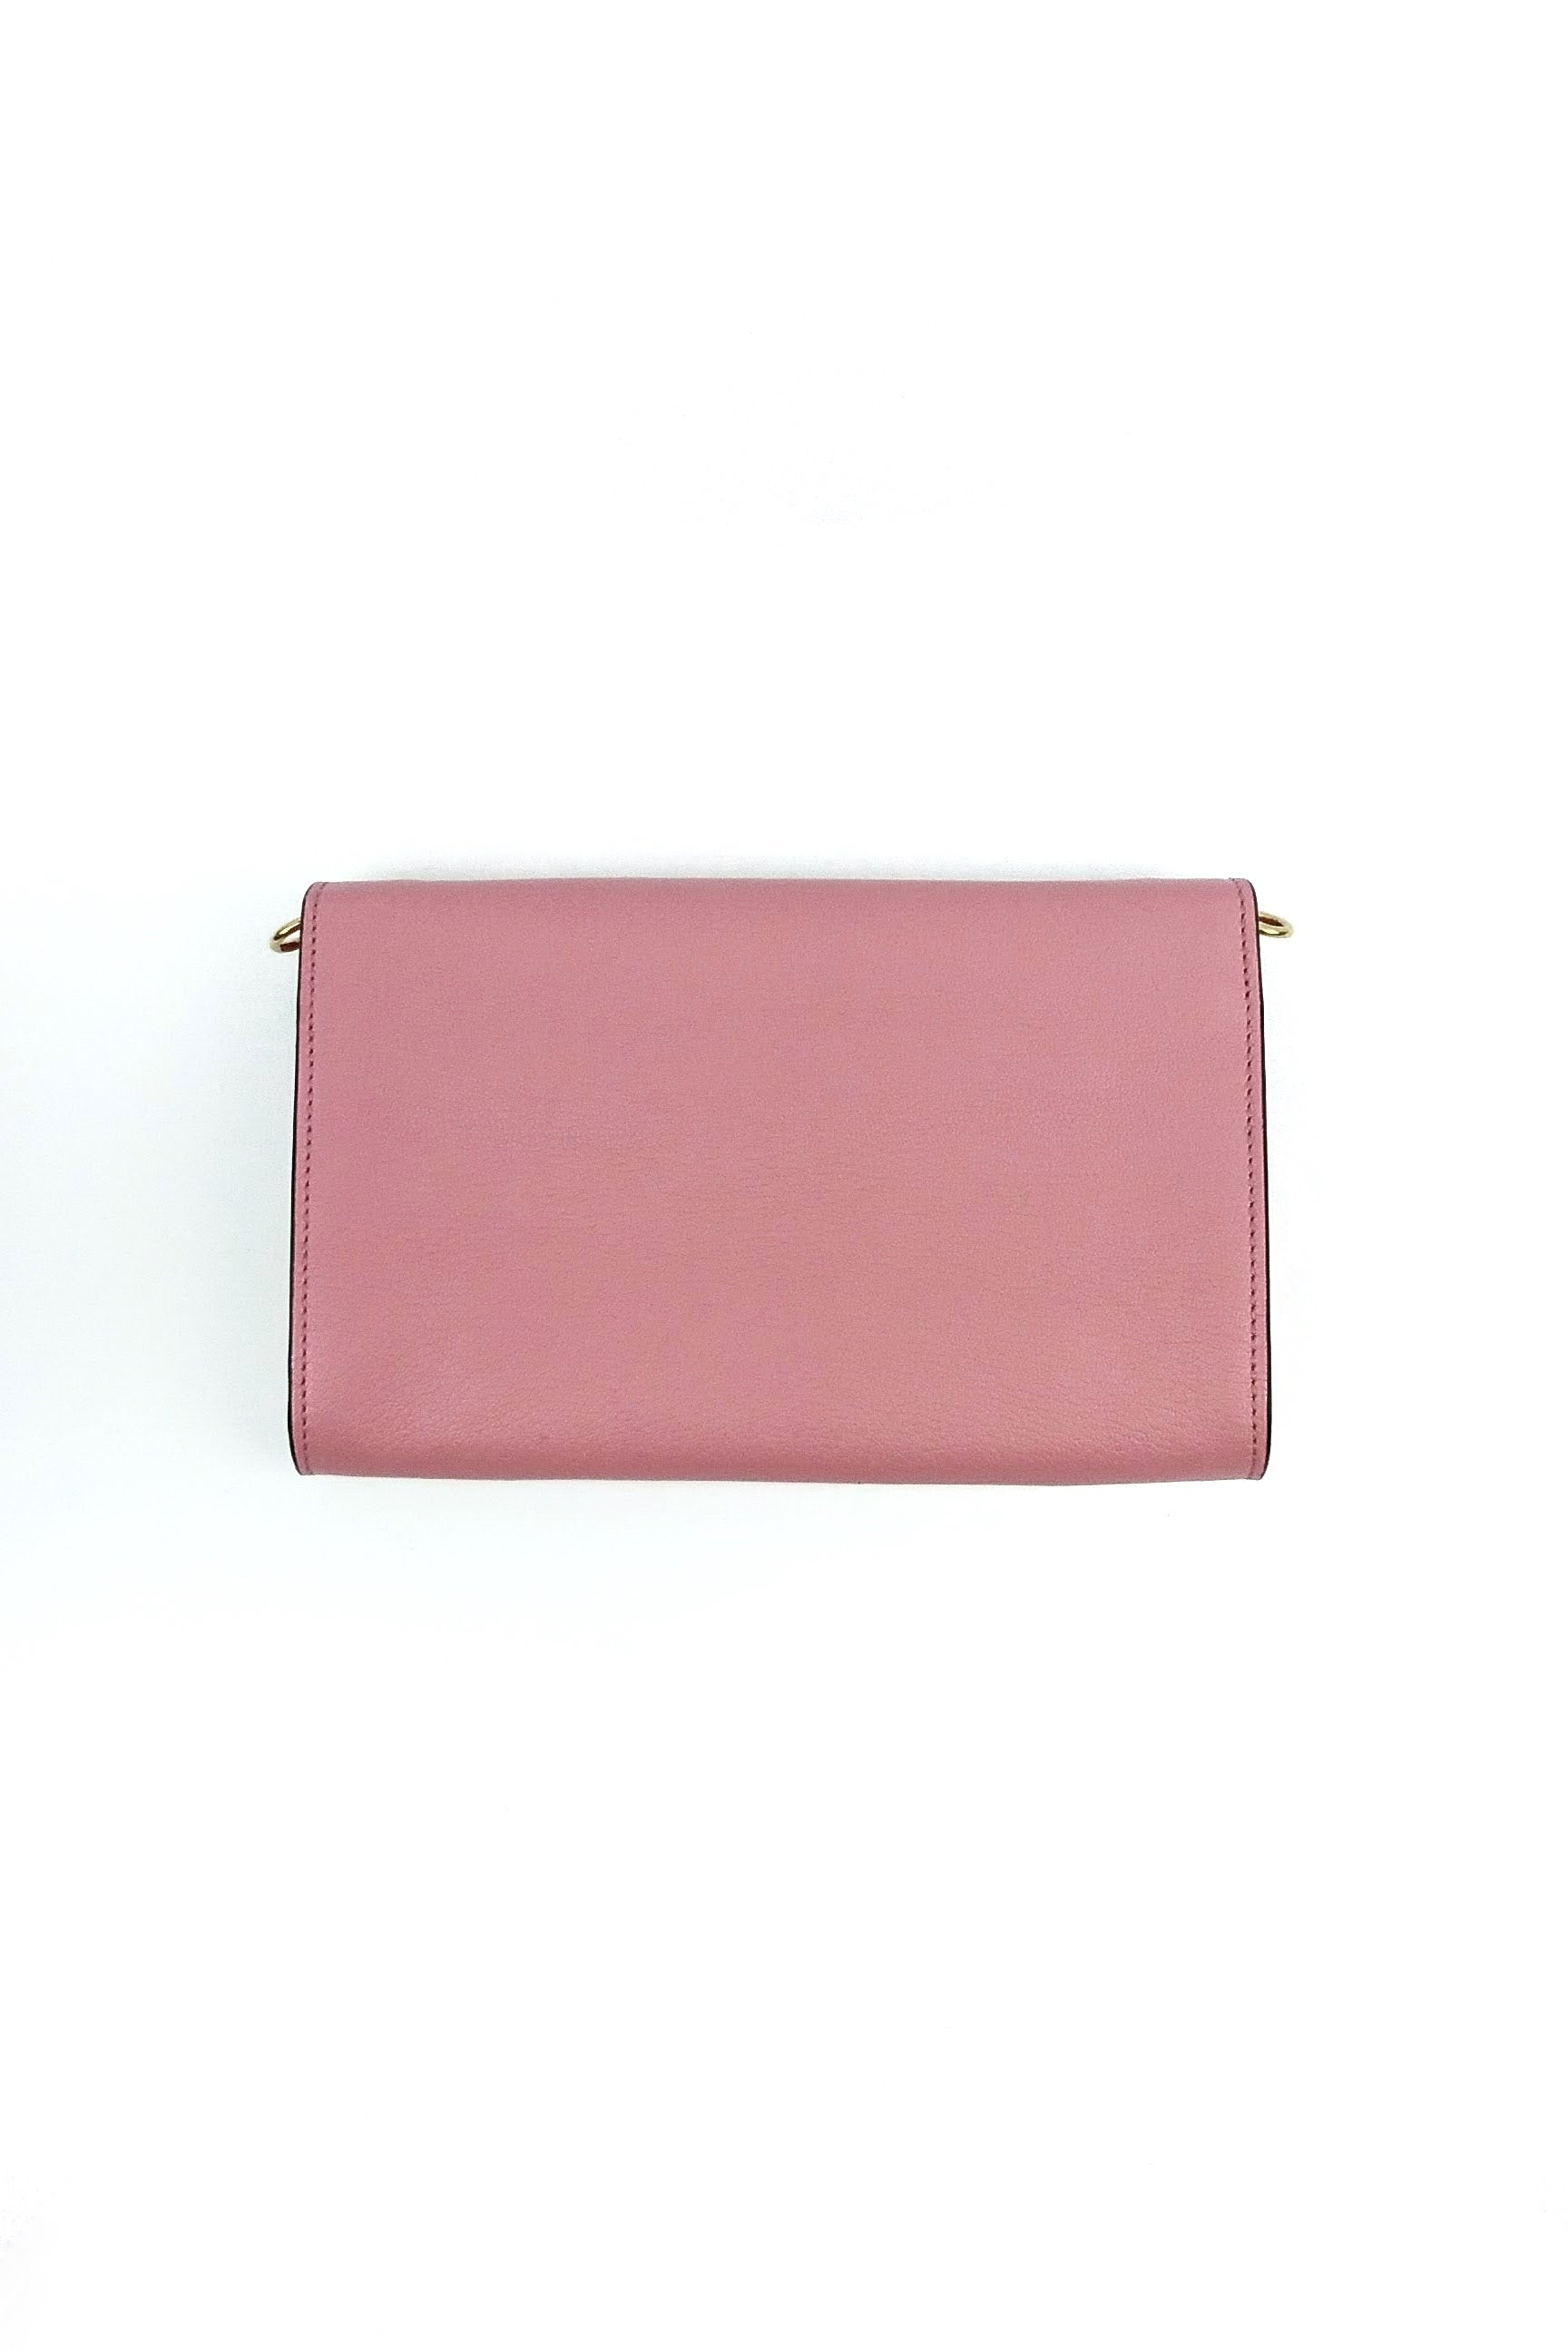 Pink Leather Envelope Clutch w/Snakeskin Strap